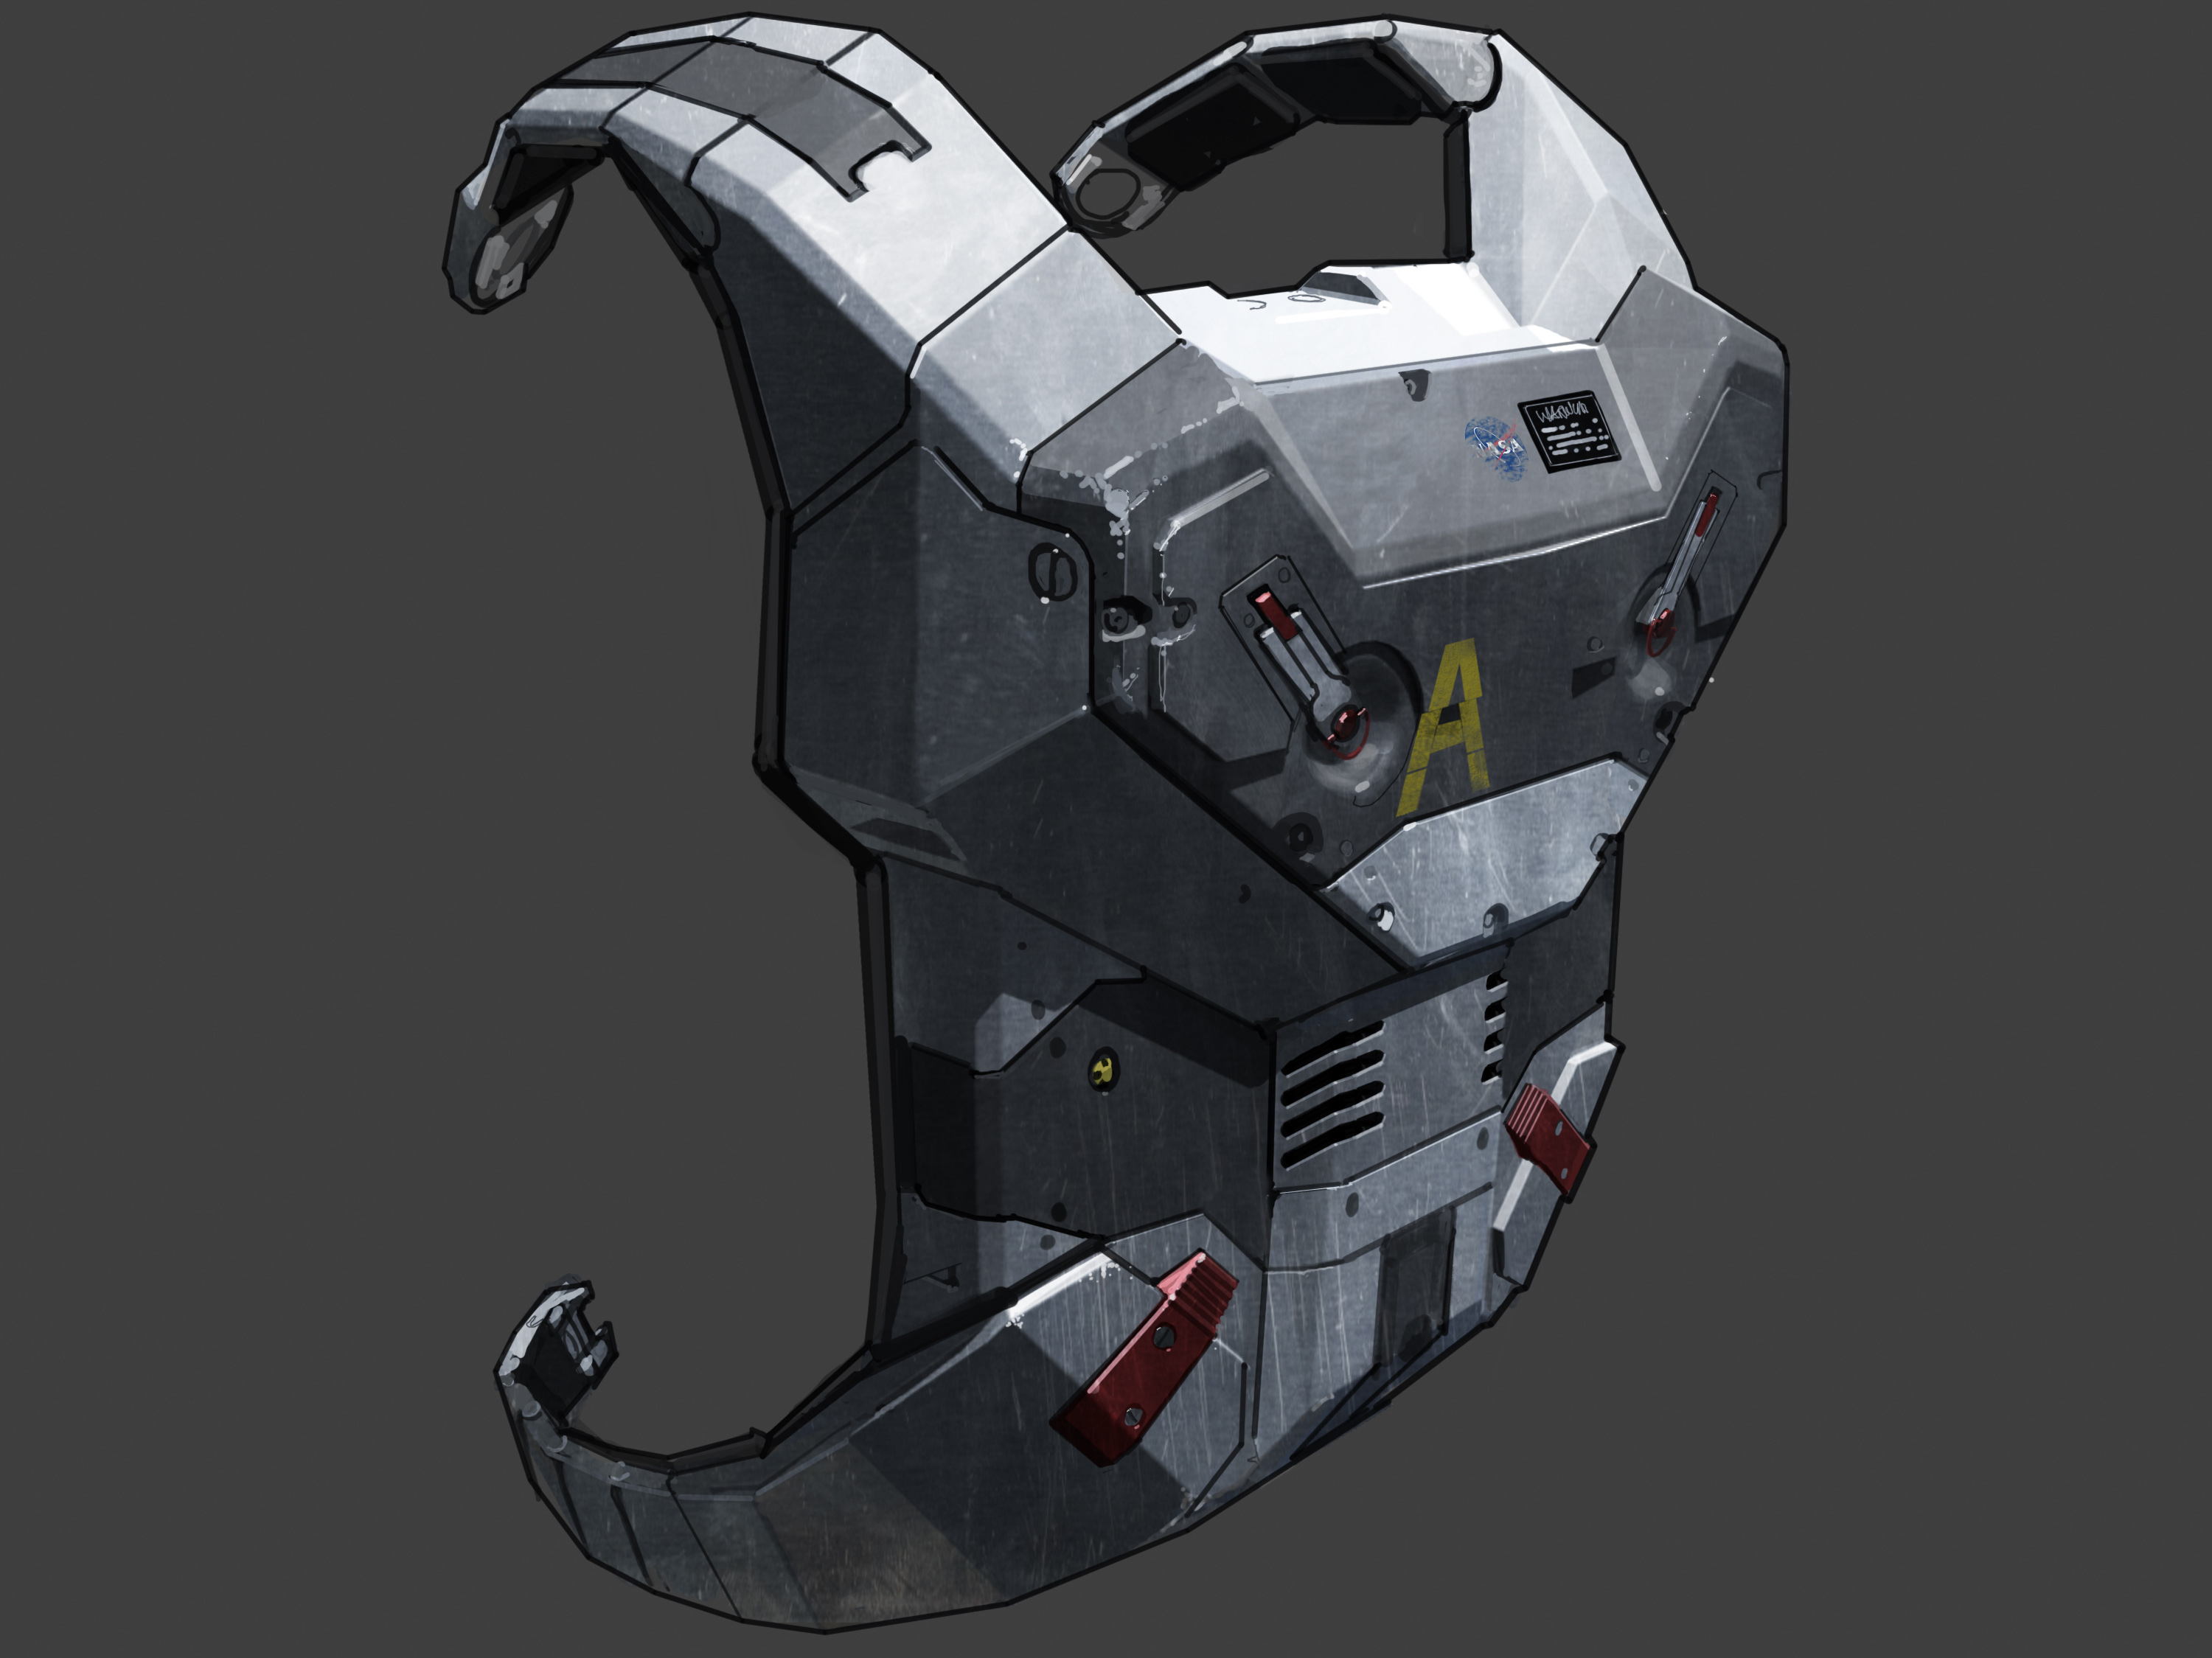 interstellar_space_suit_backpack03_copy